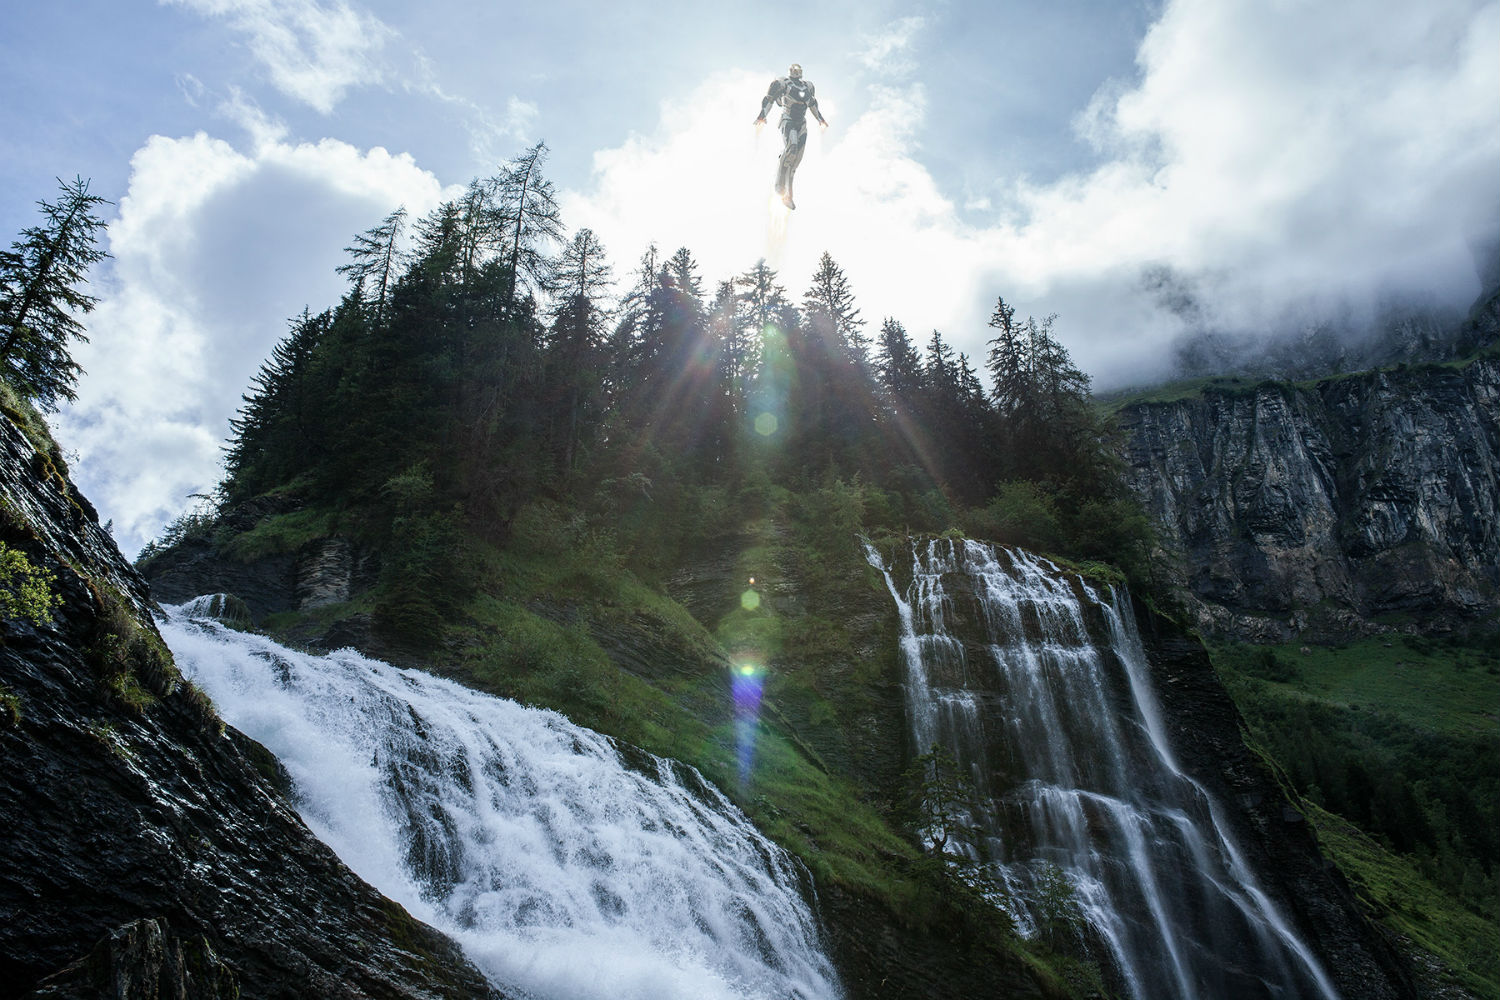 benoit lapray superheroes photography nature solitude waterfall